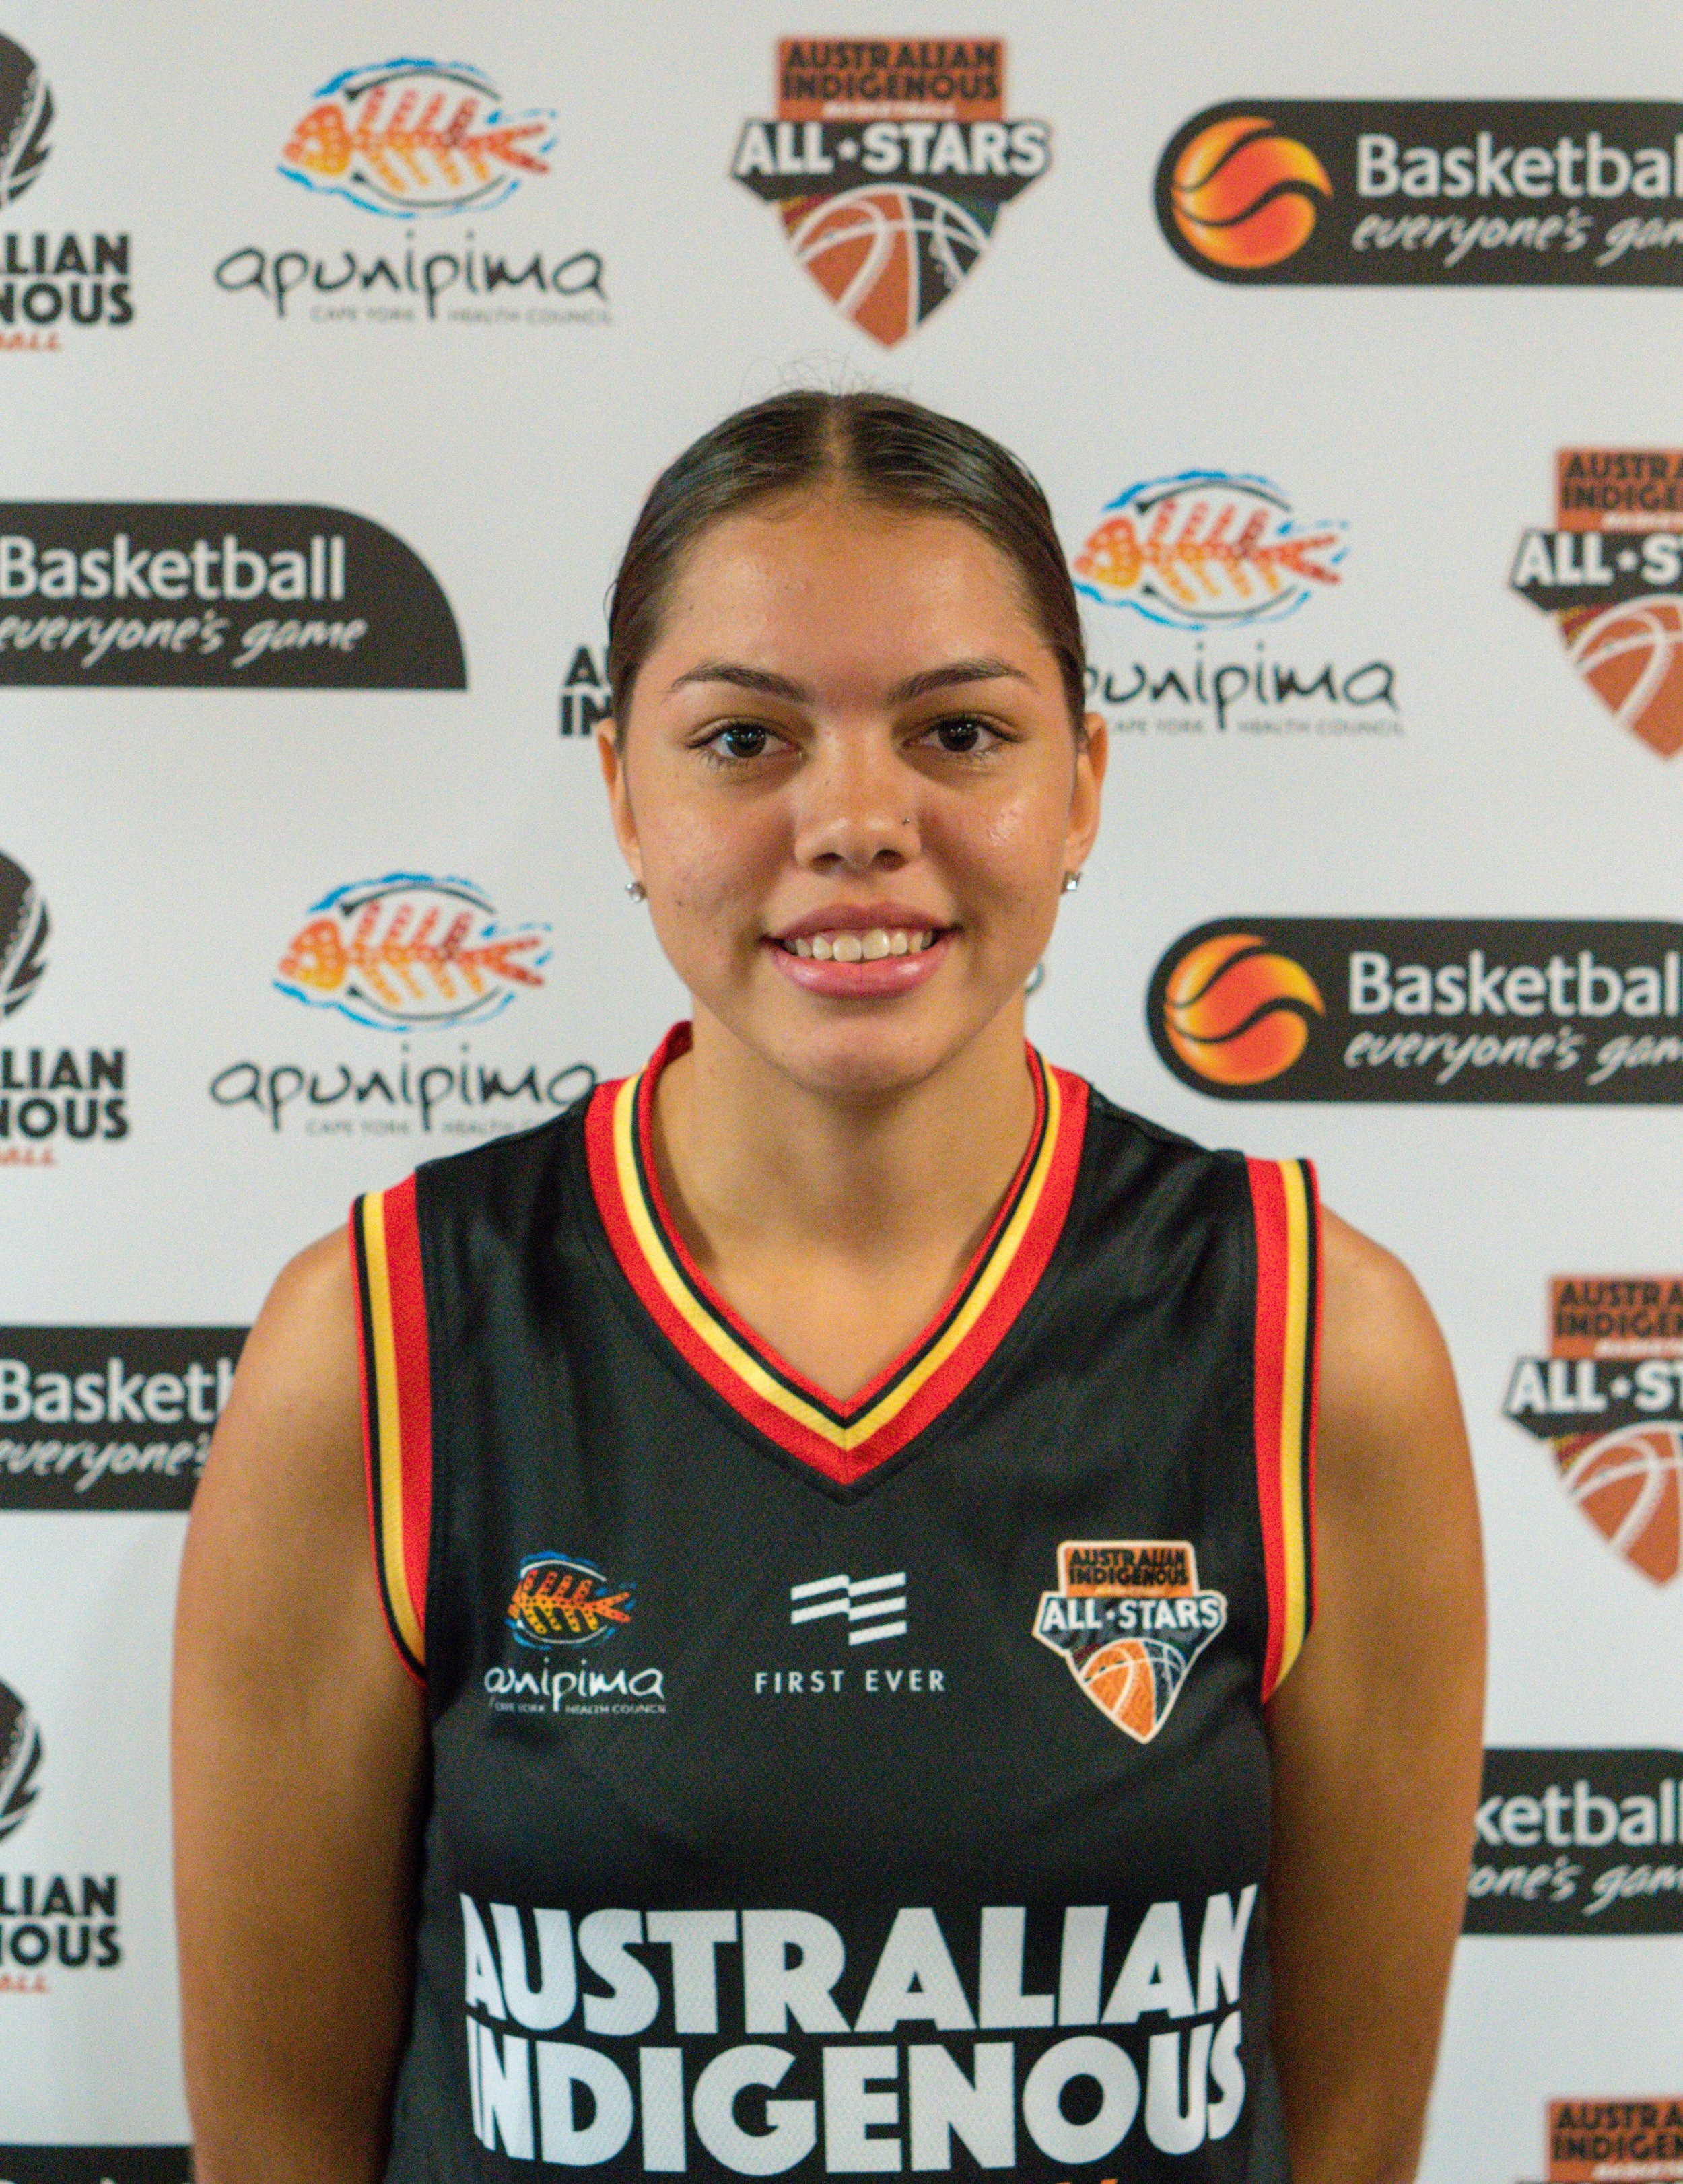 Nes'eya Williams - Perth Lynx WNBL, WA